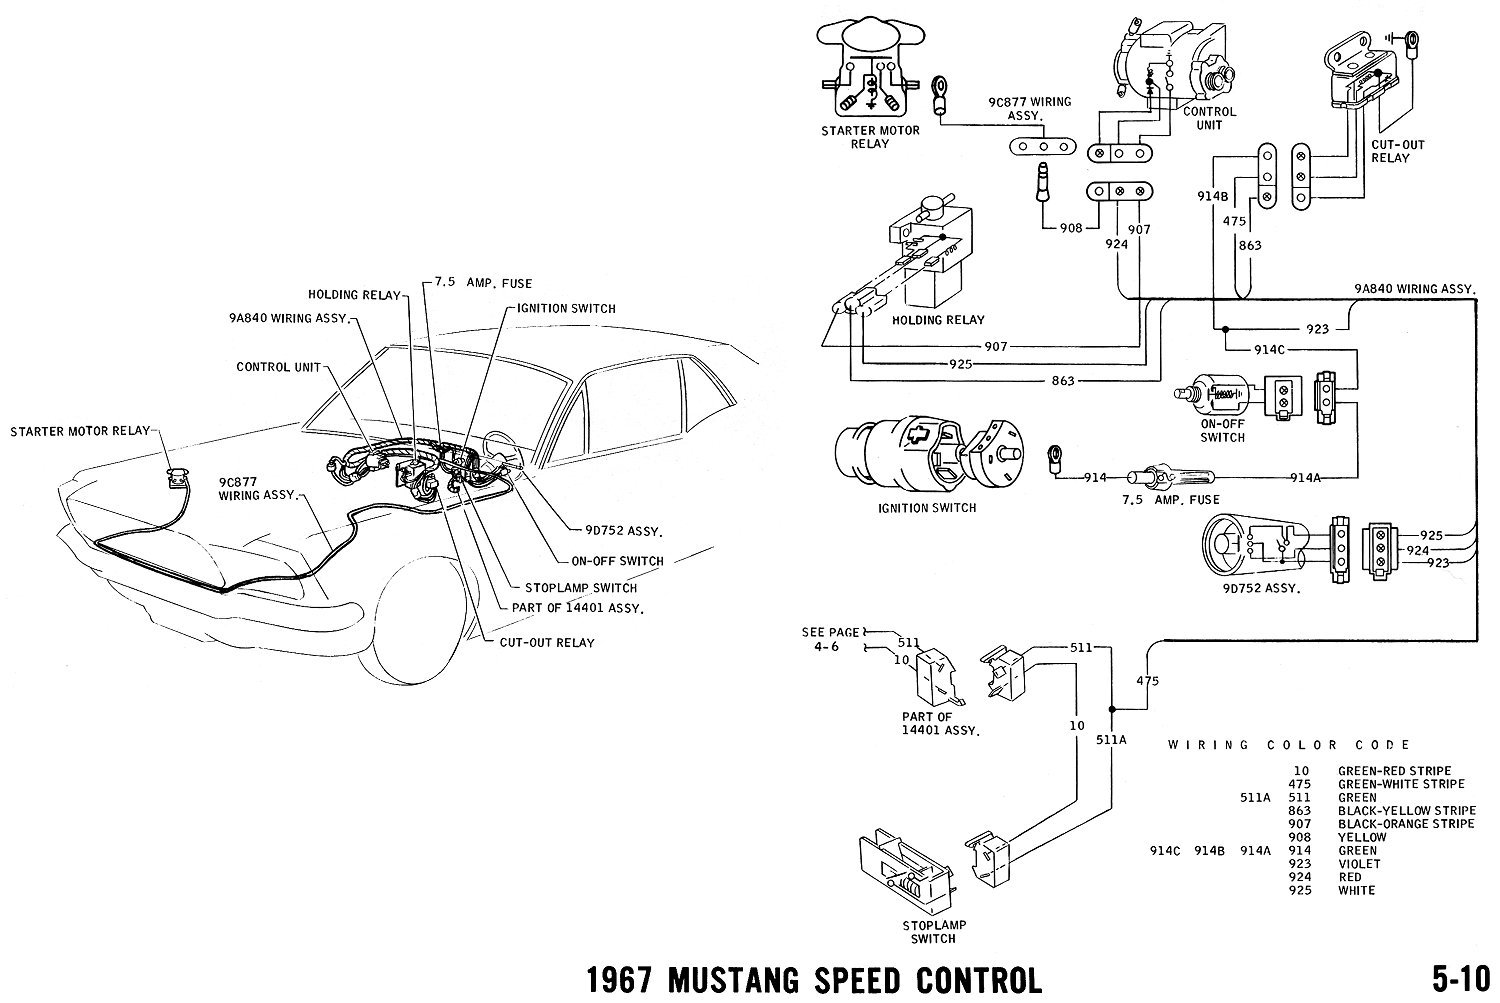 67speed 67 mustang wiring diagram 1965 mustang wiring harness diagram 1967 mustang ignition wiring diagram at soozxer.org